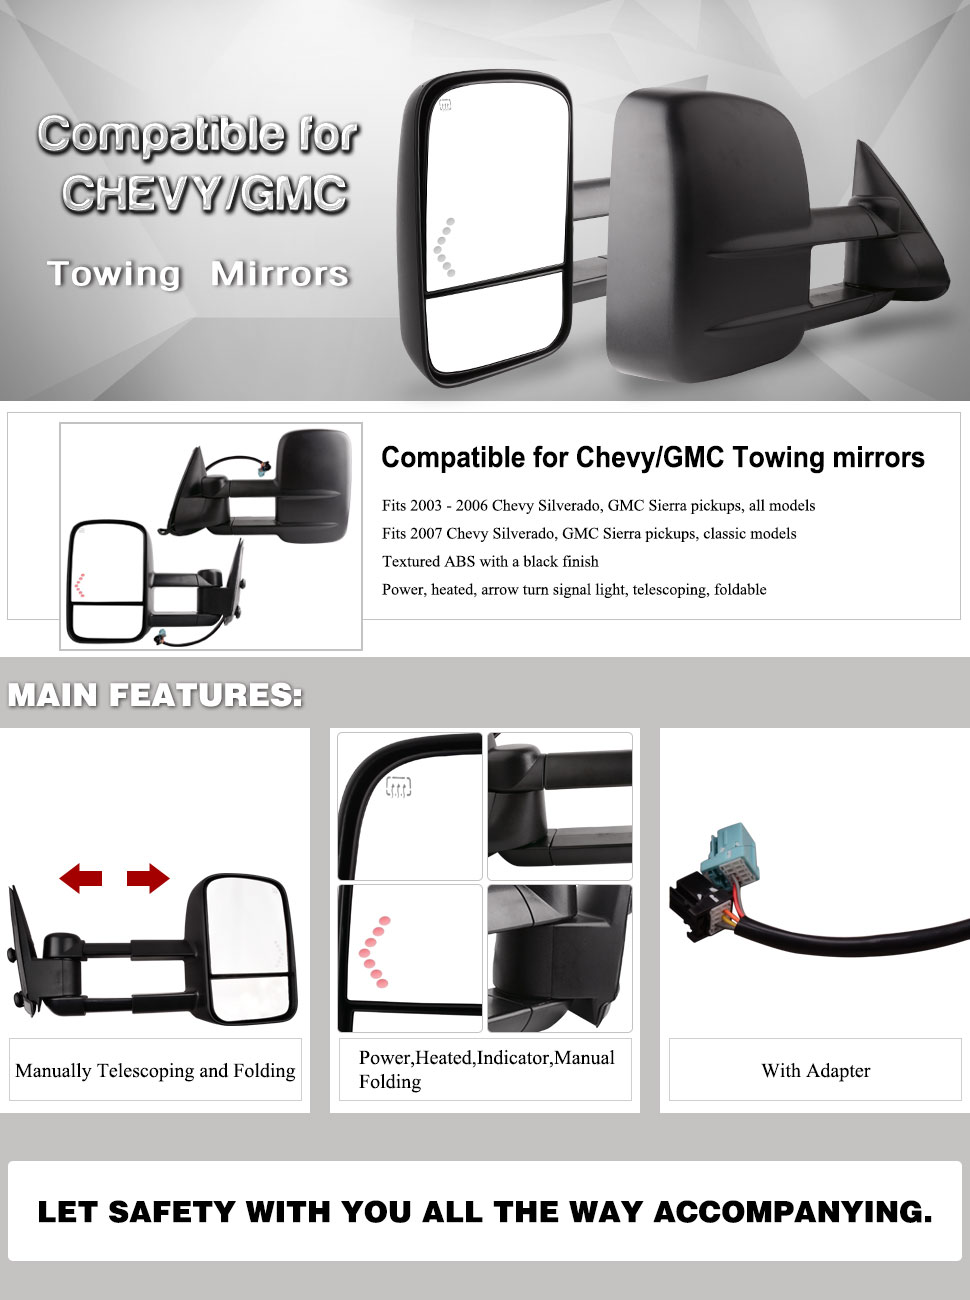 Amazon Com Yitamotor Compatible For Chevy Towing Mirrors